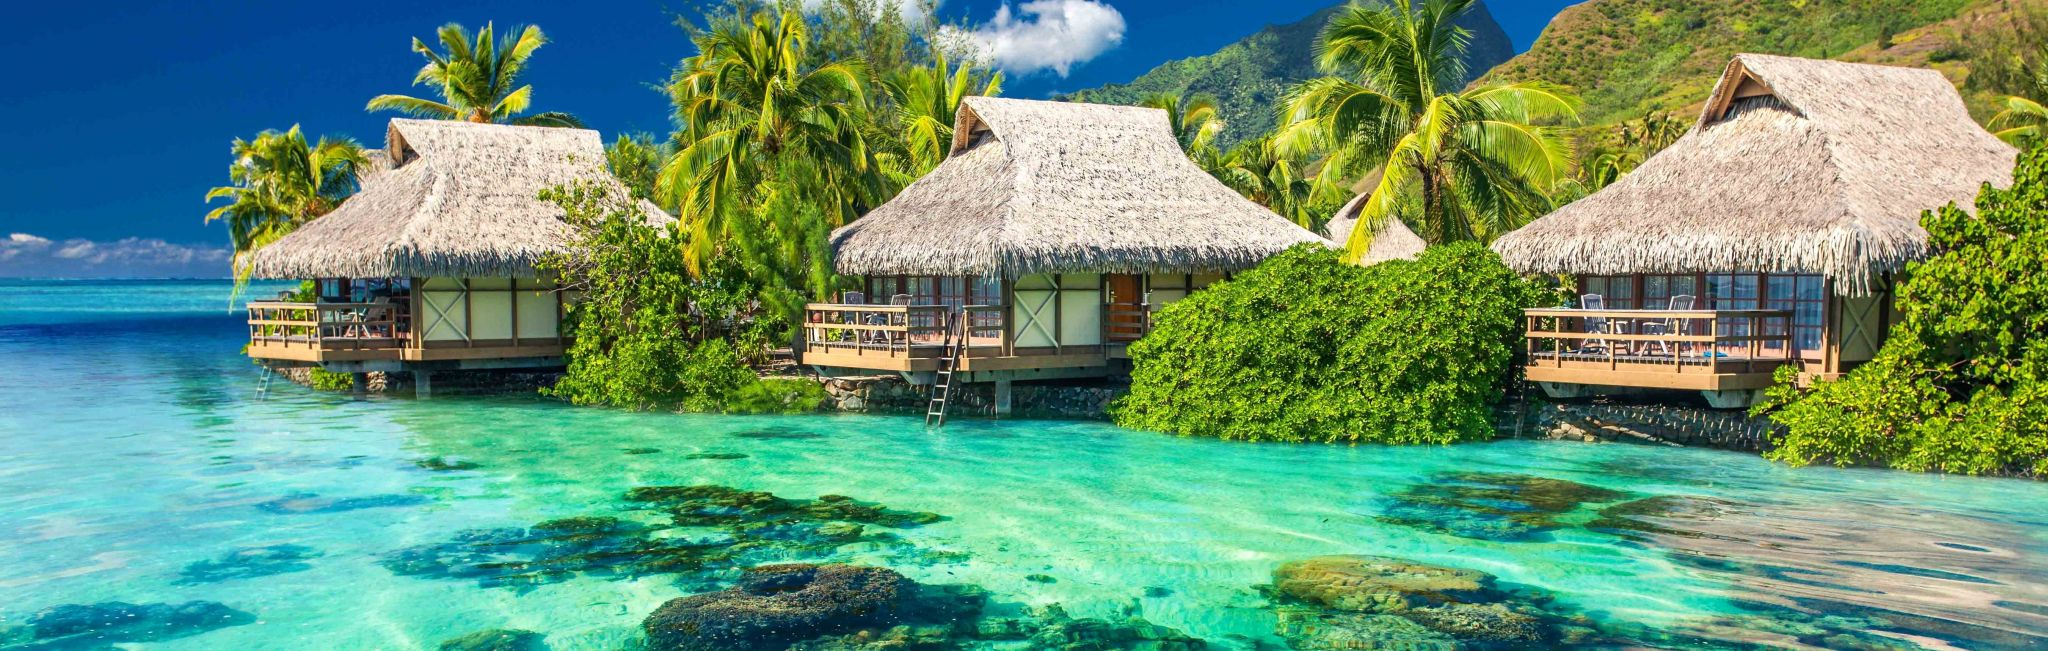 Vacation Deals Best Place In The World For Vacation - Hawaii vacation packages 2016